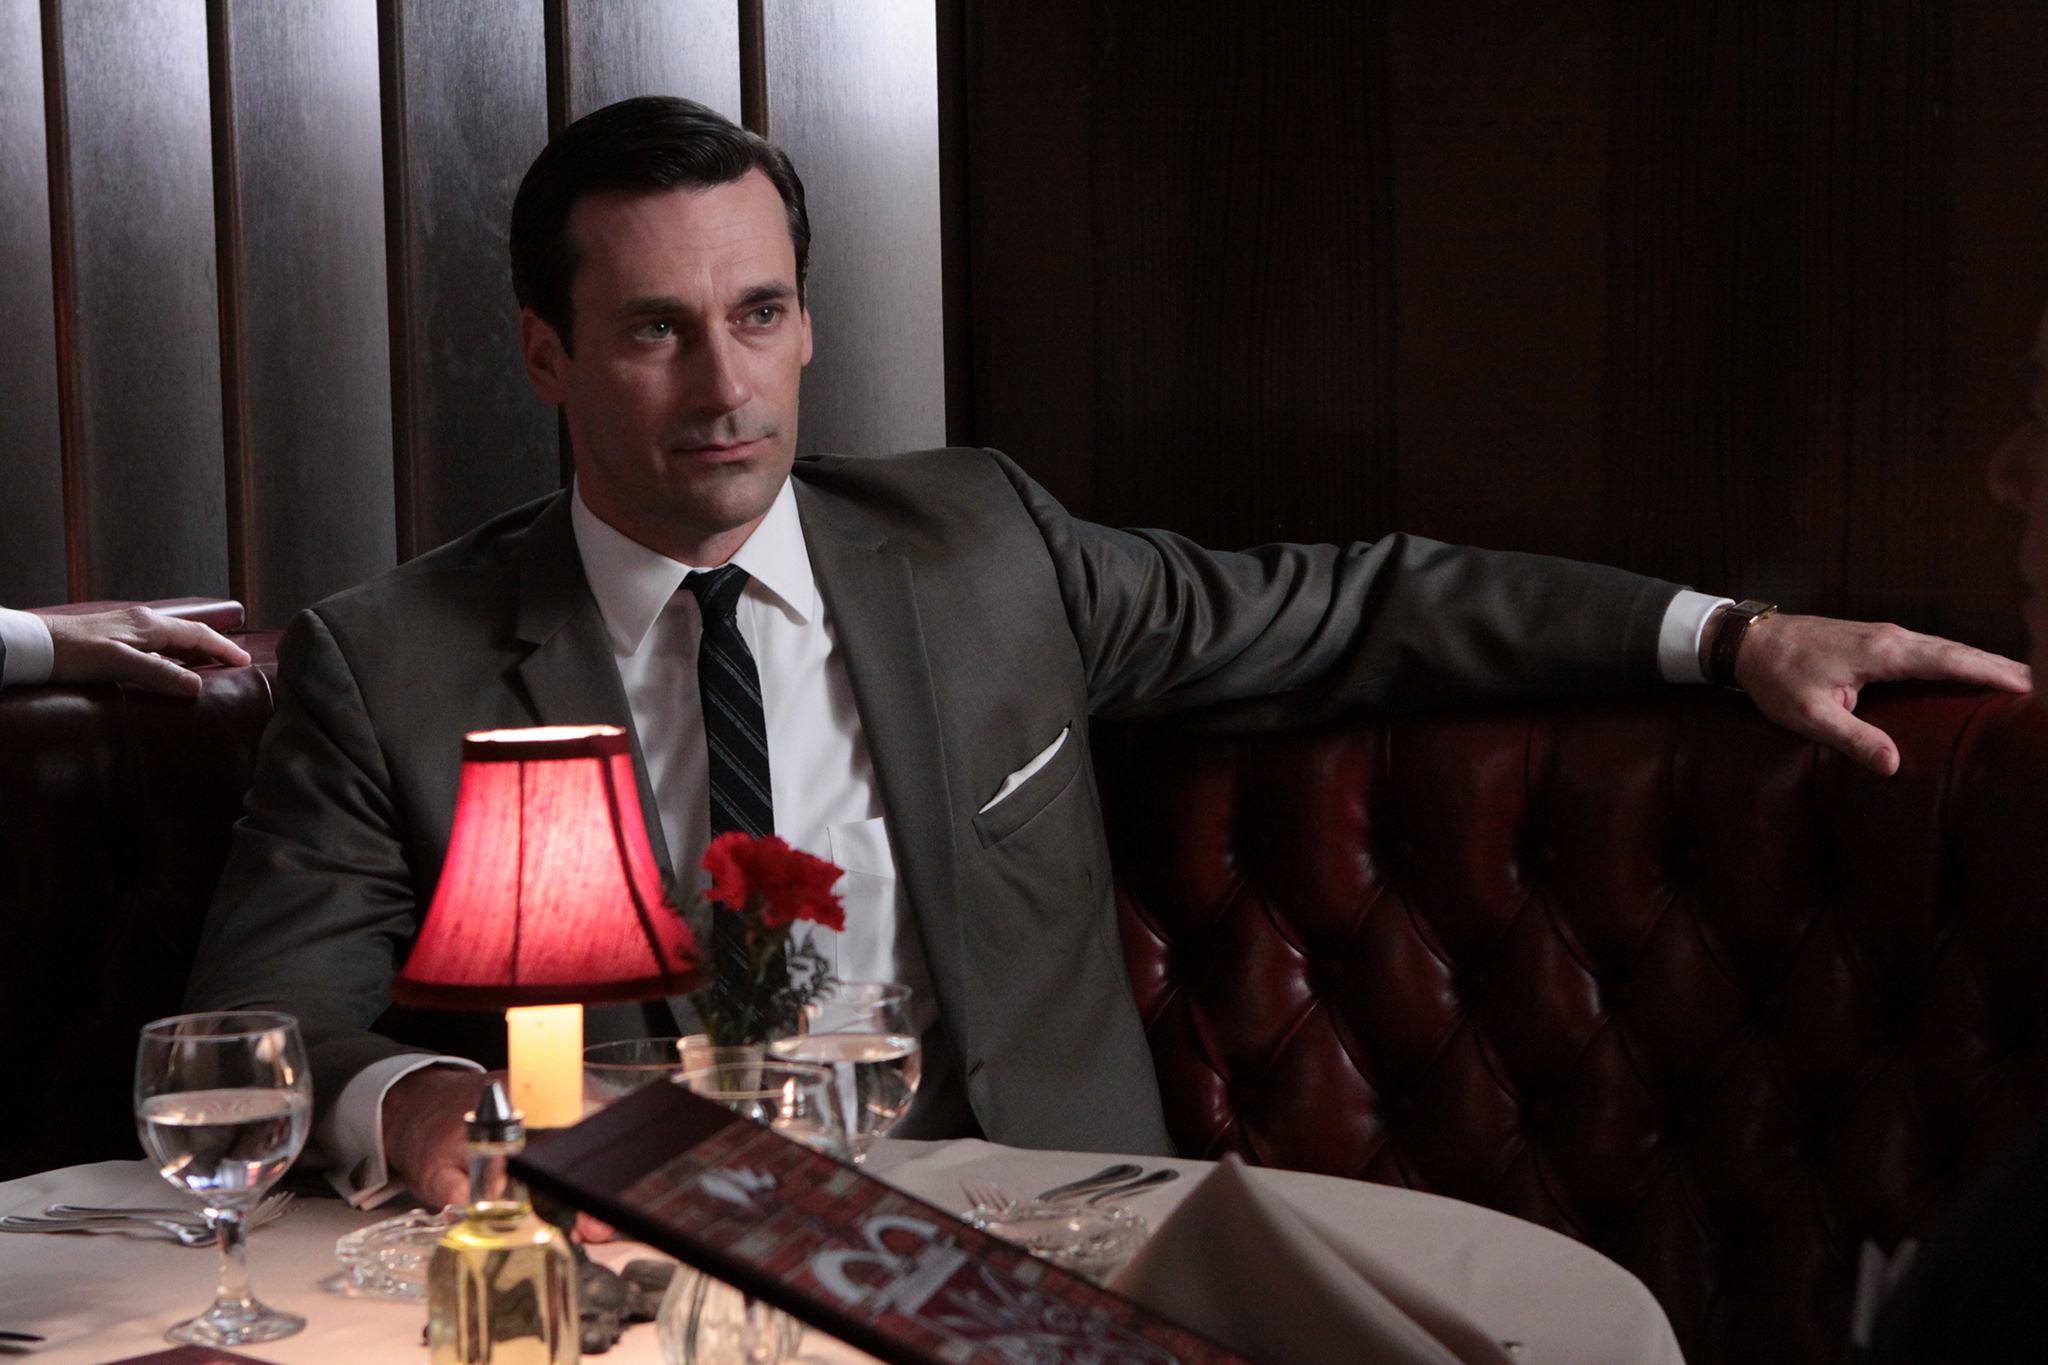 Don Draper (Jon Hamm) - Mad Men - Season 3, Episode 2 - Photo Credit: Carin Baer/AMC